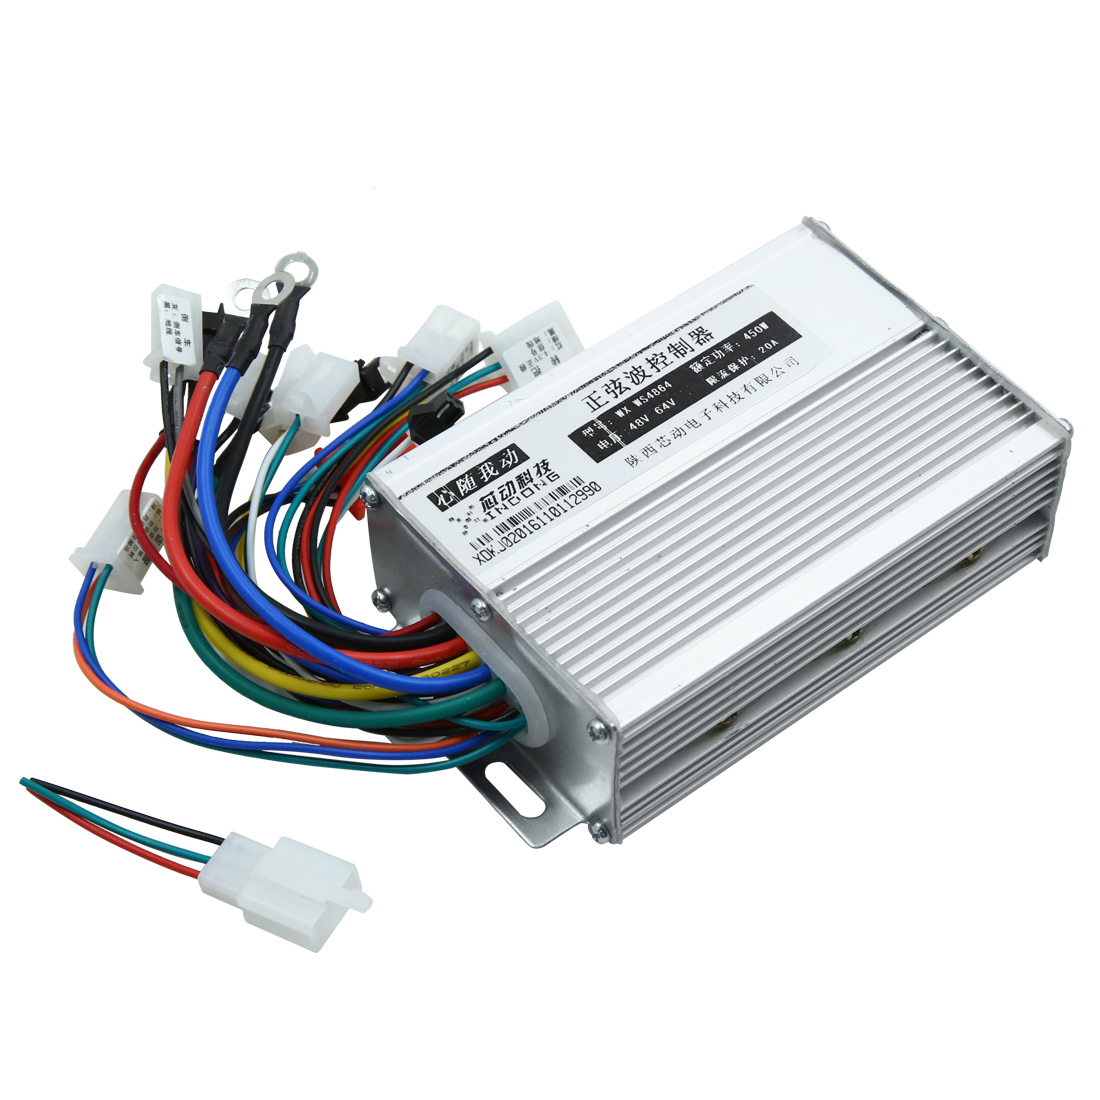 48-64V 450W 20A Electric Bike Bicycle Brushless Speed Motor Controller